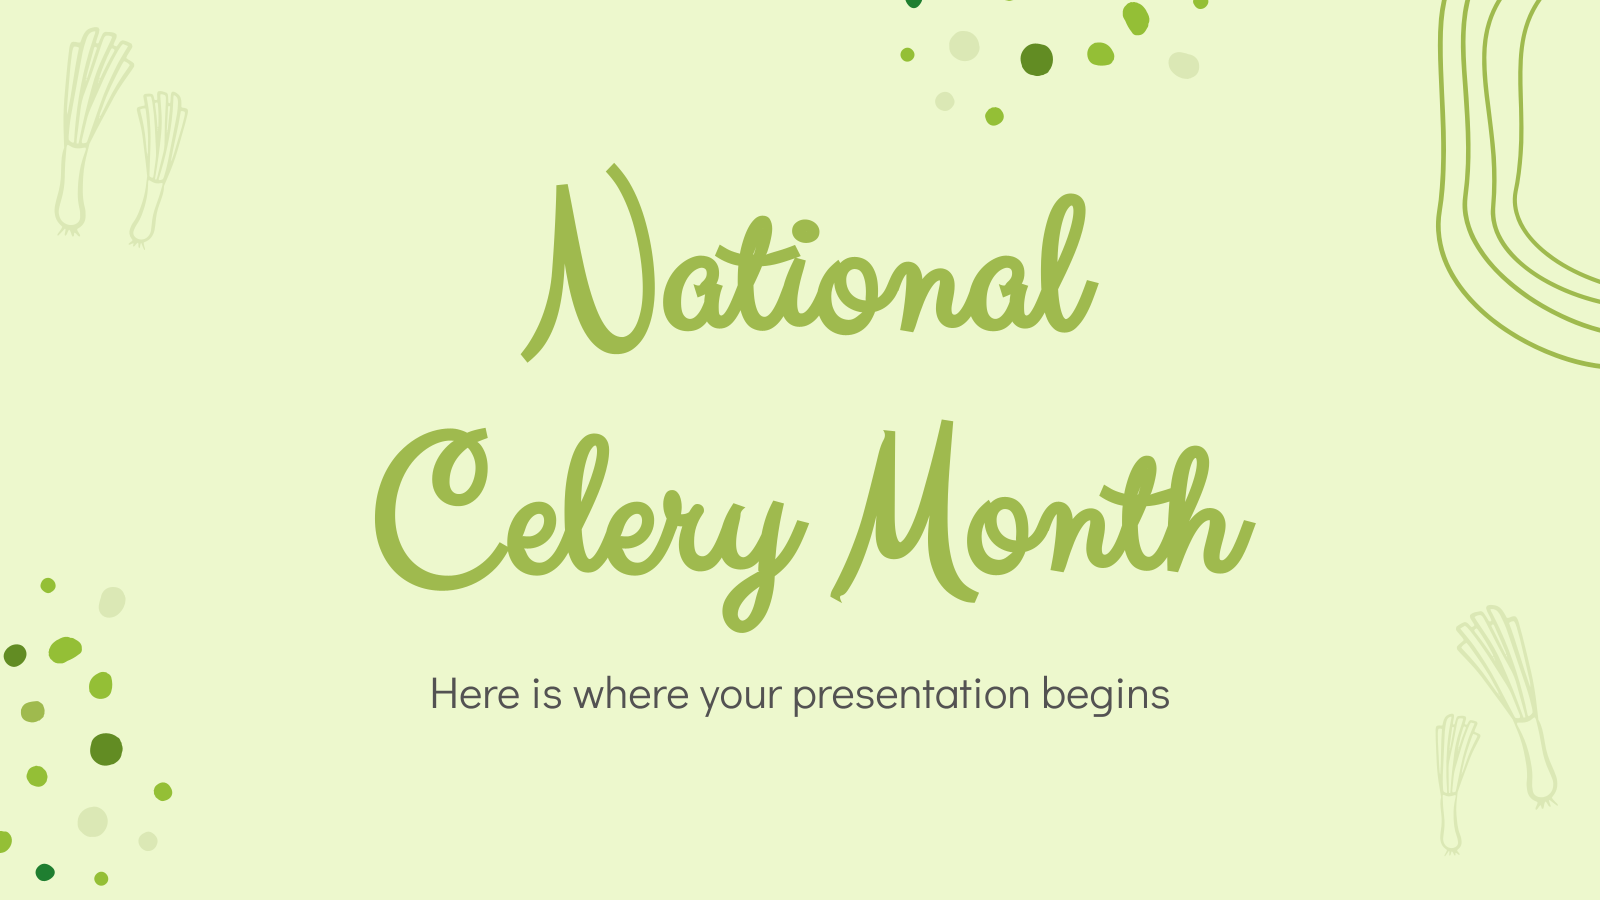 National Celery Month presentation template